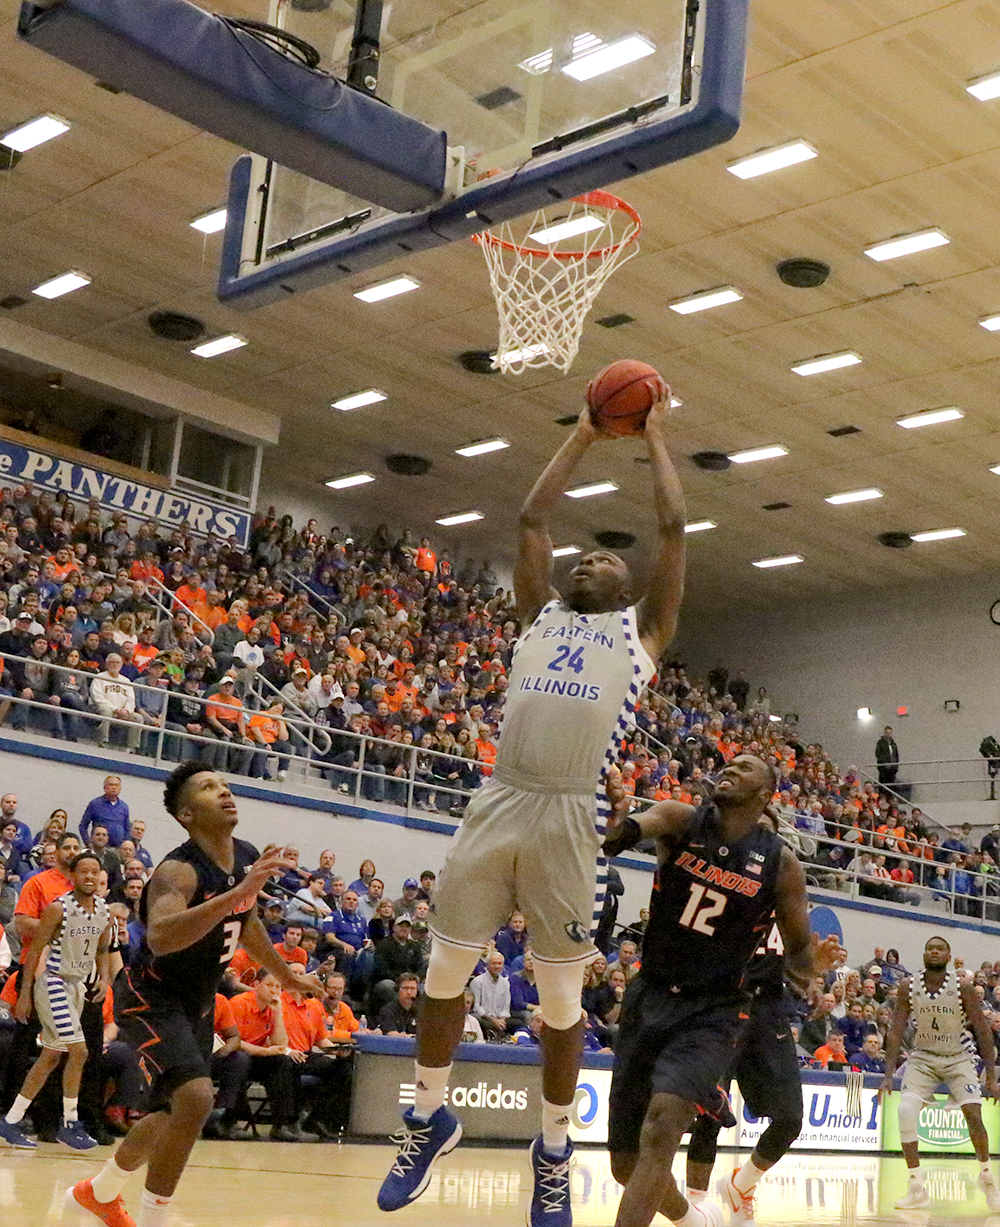 Junior Jajuan Starks goes up for the dunk in Eastern's win over Illinois Nov. 3 in Lantz Arena. Starks is the Panthers' leading scorer and said they need to get better at closing out games.